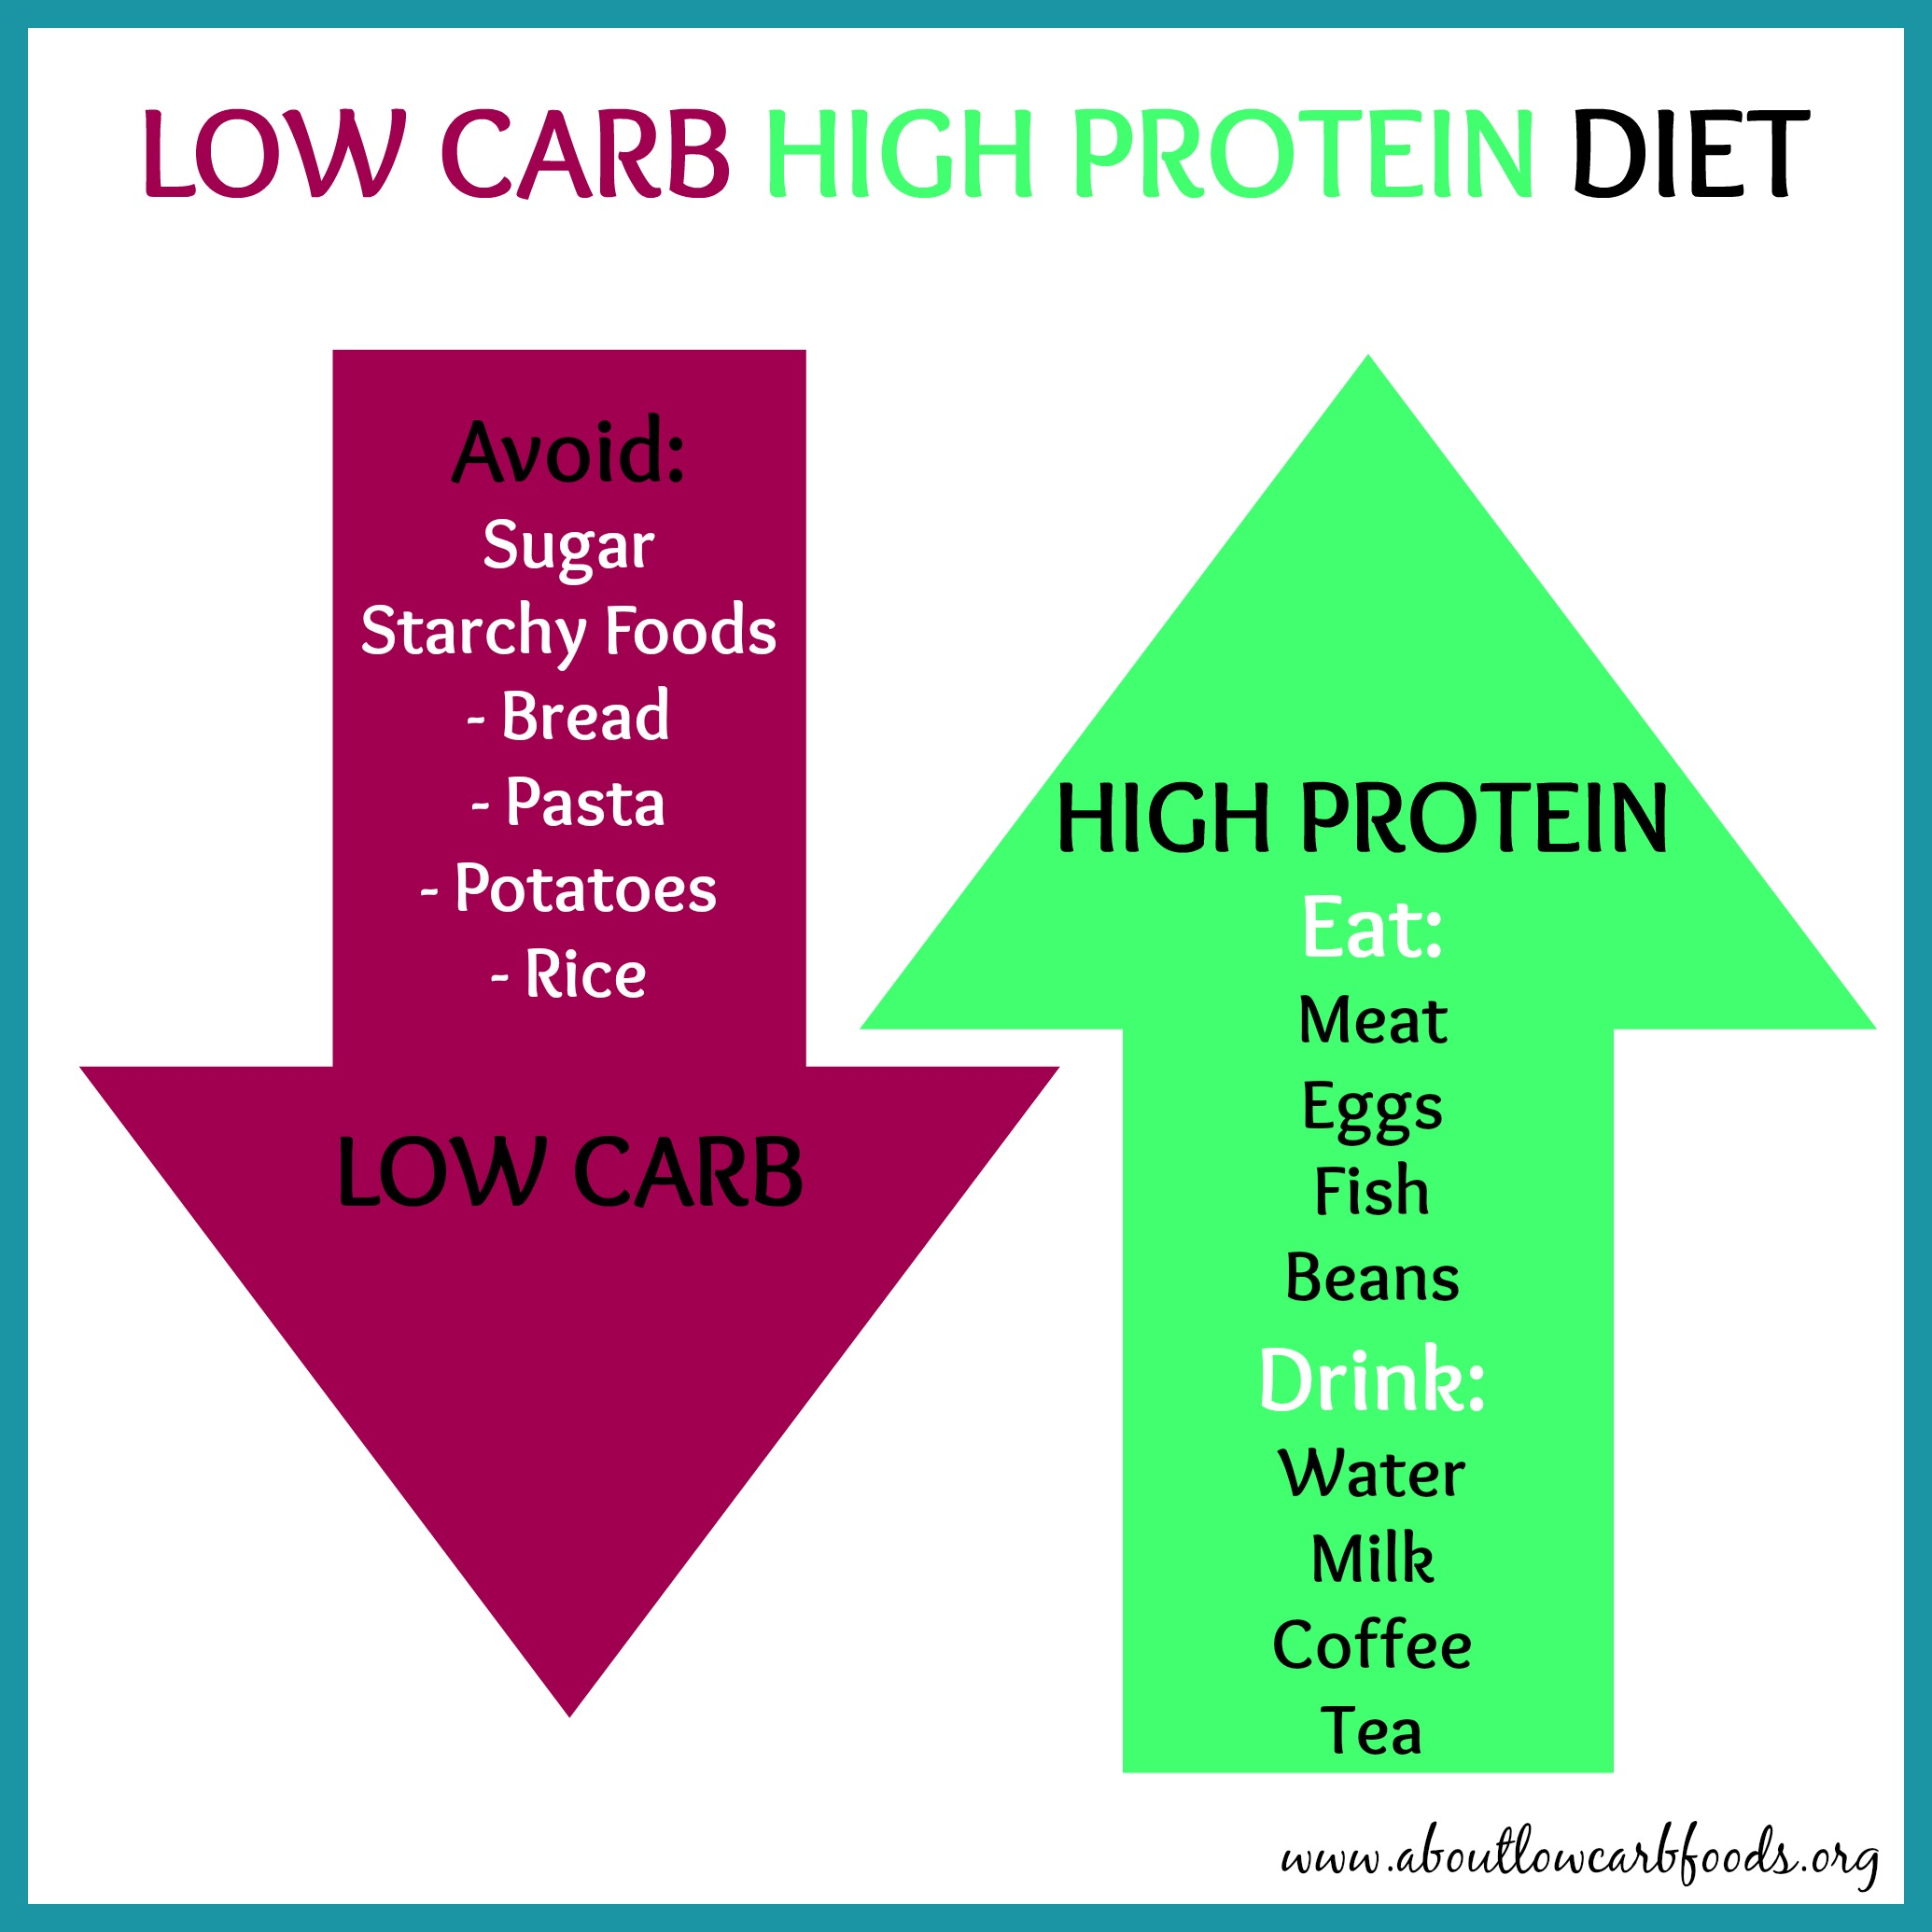 7 Dangers of Low Carbohydrate Diets for Women